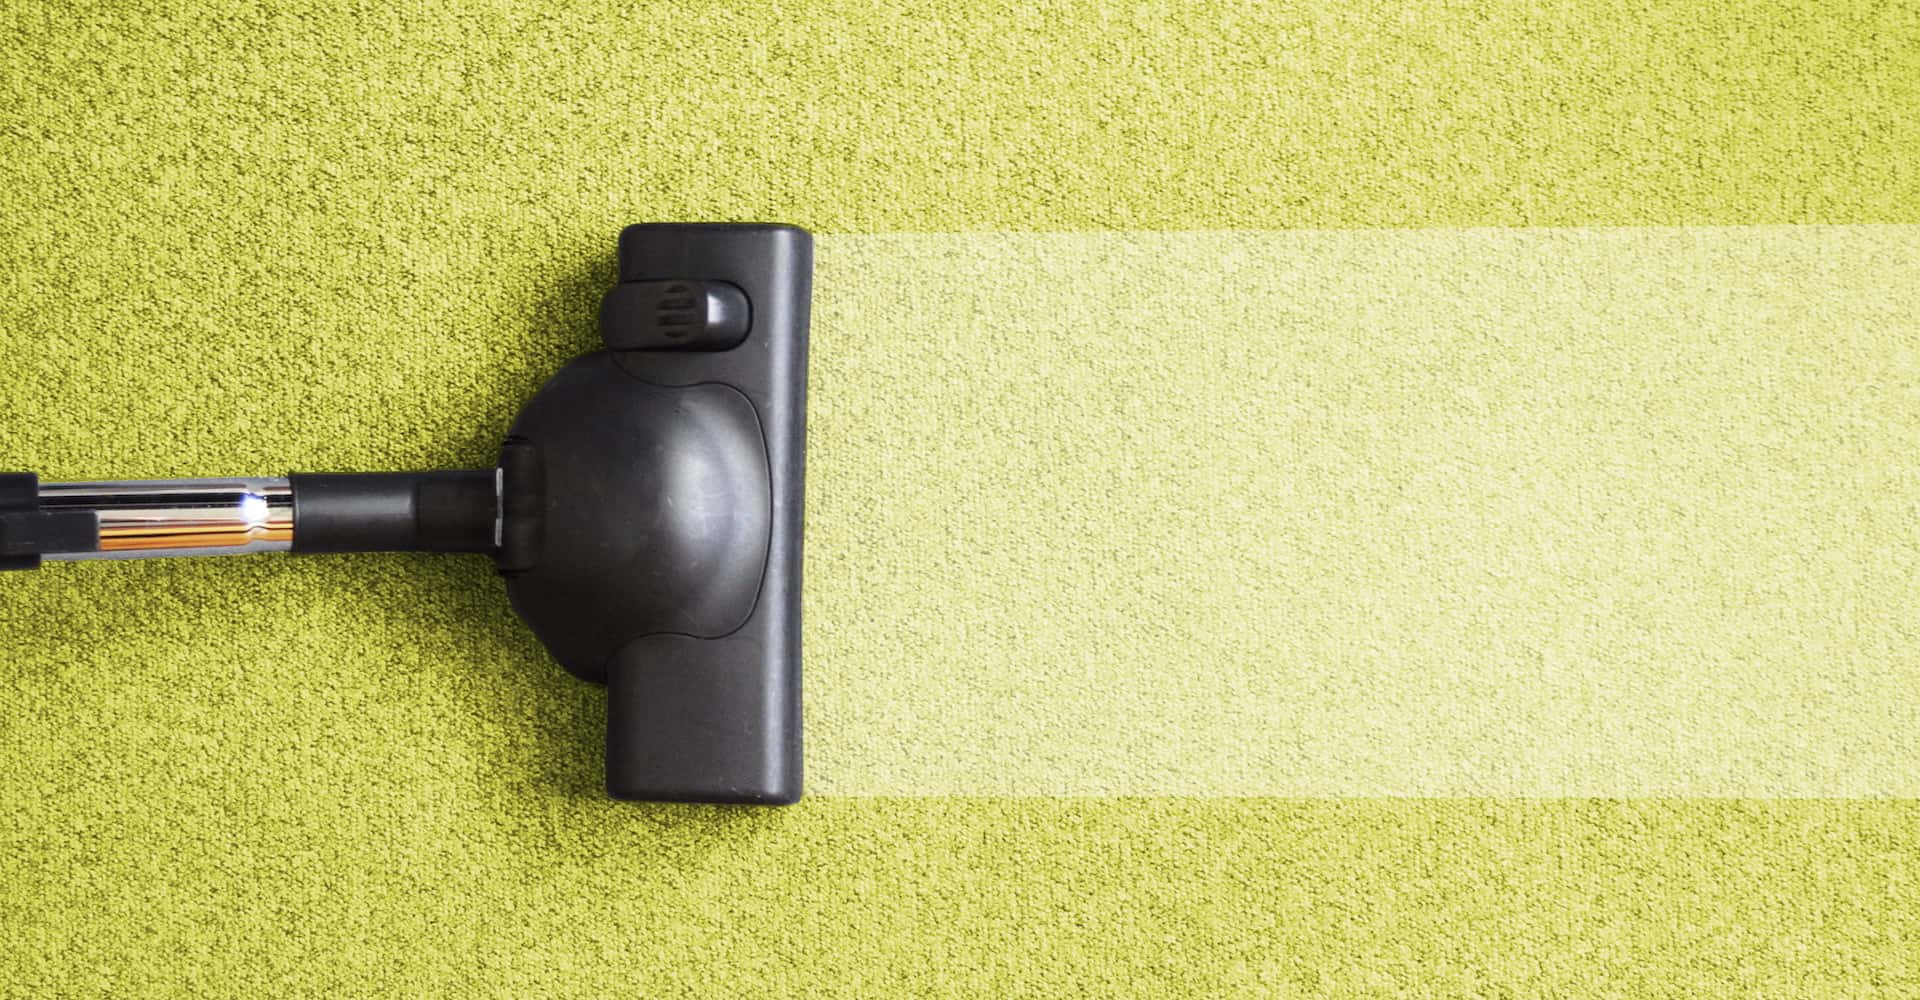 Top Resource for Vacuum Cleaner Reviews, Guides and News